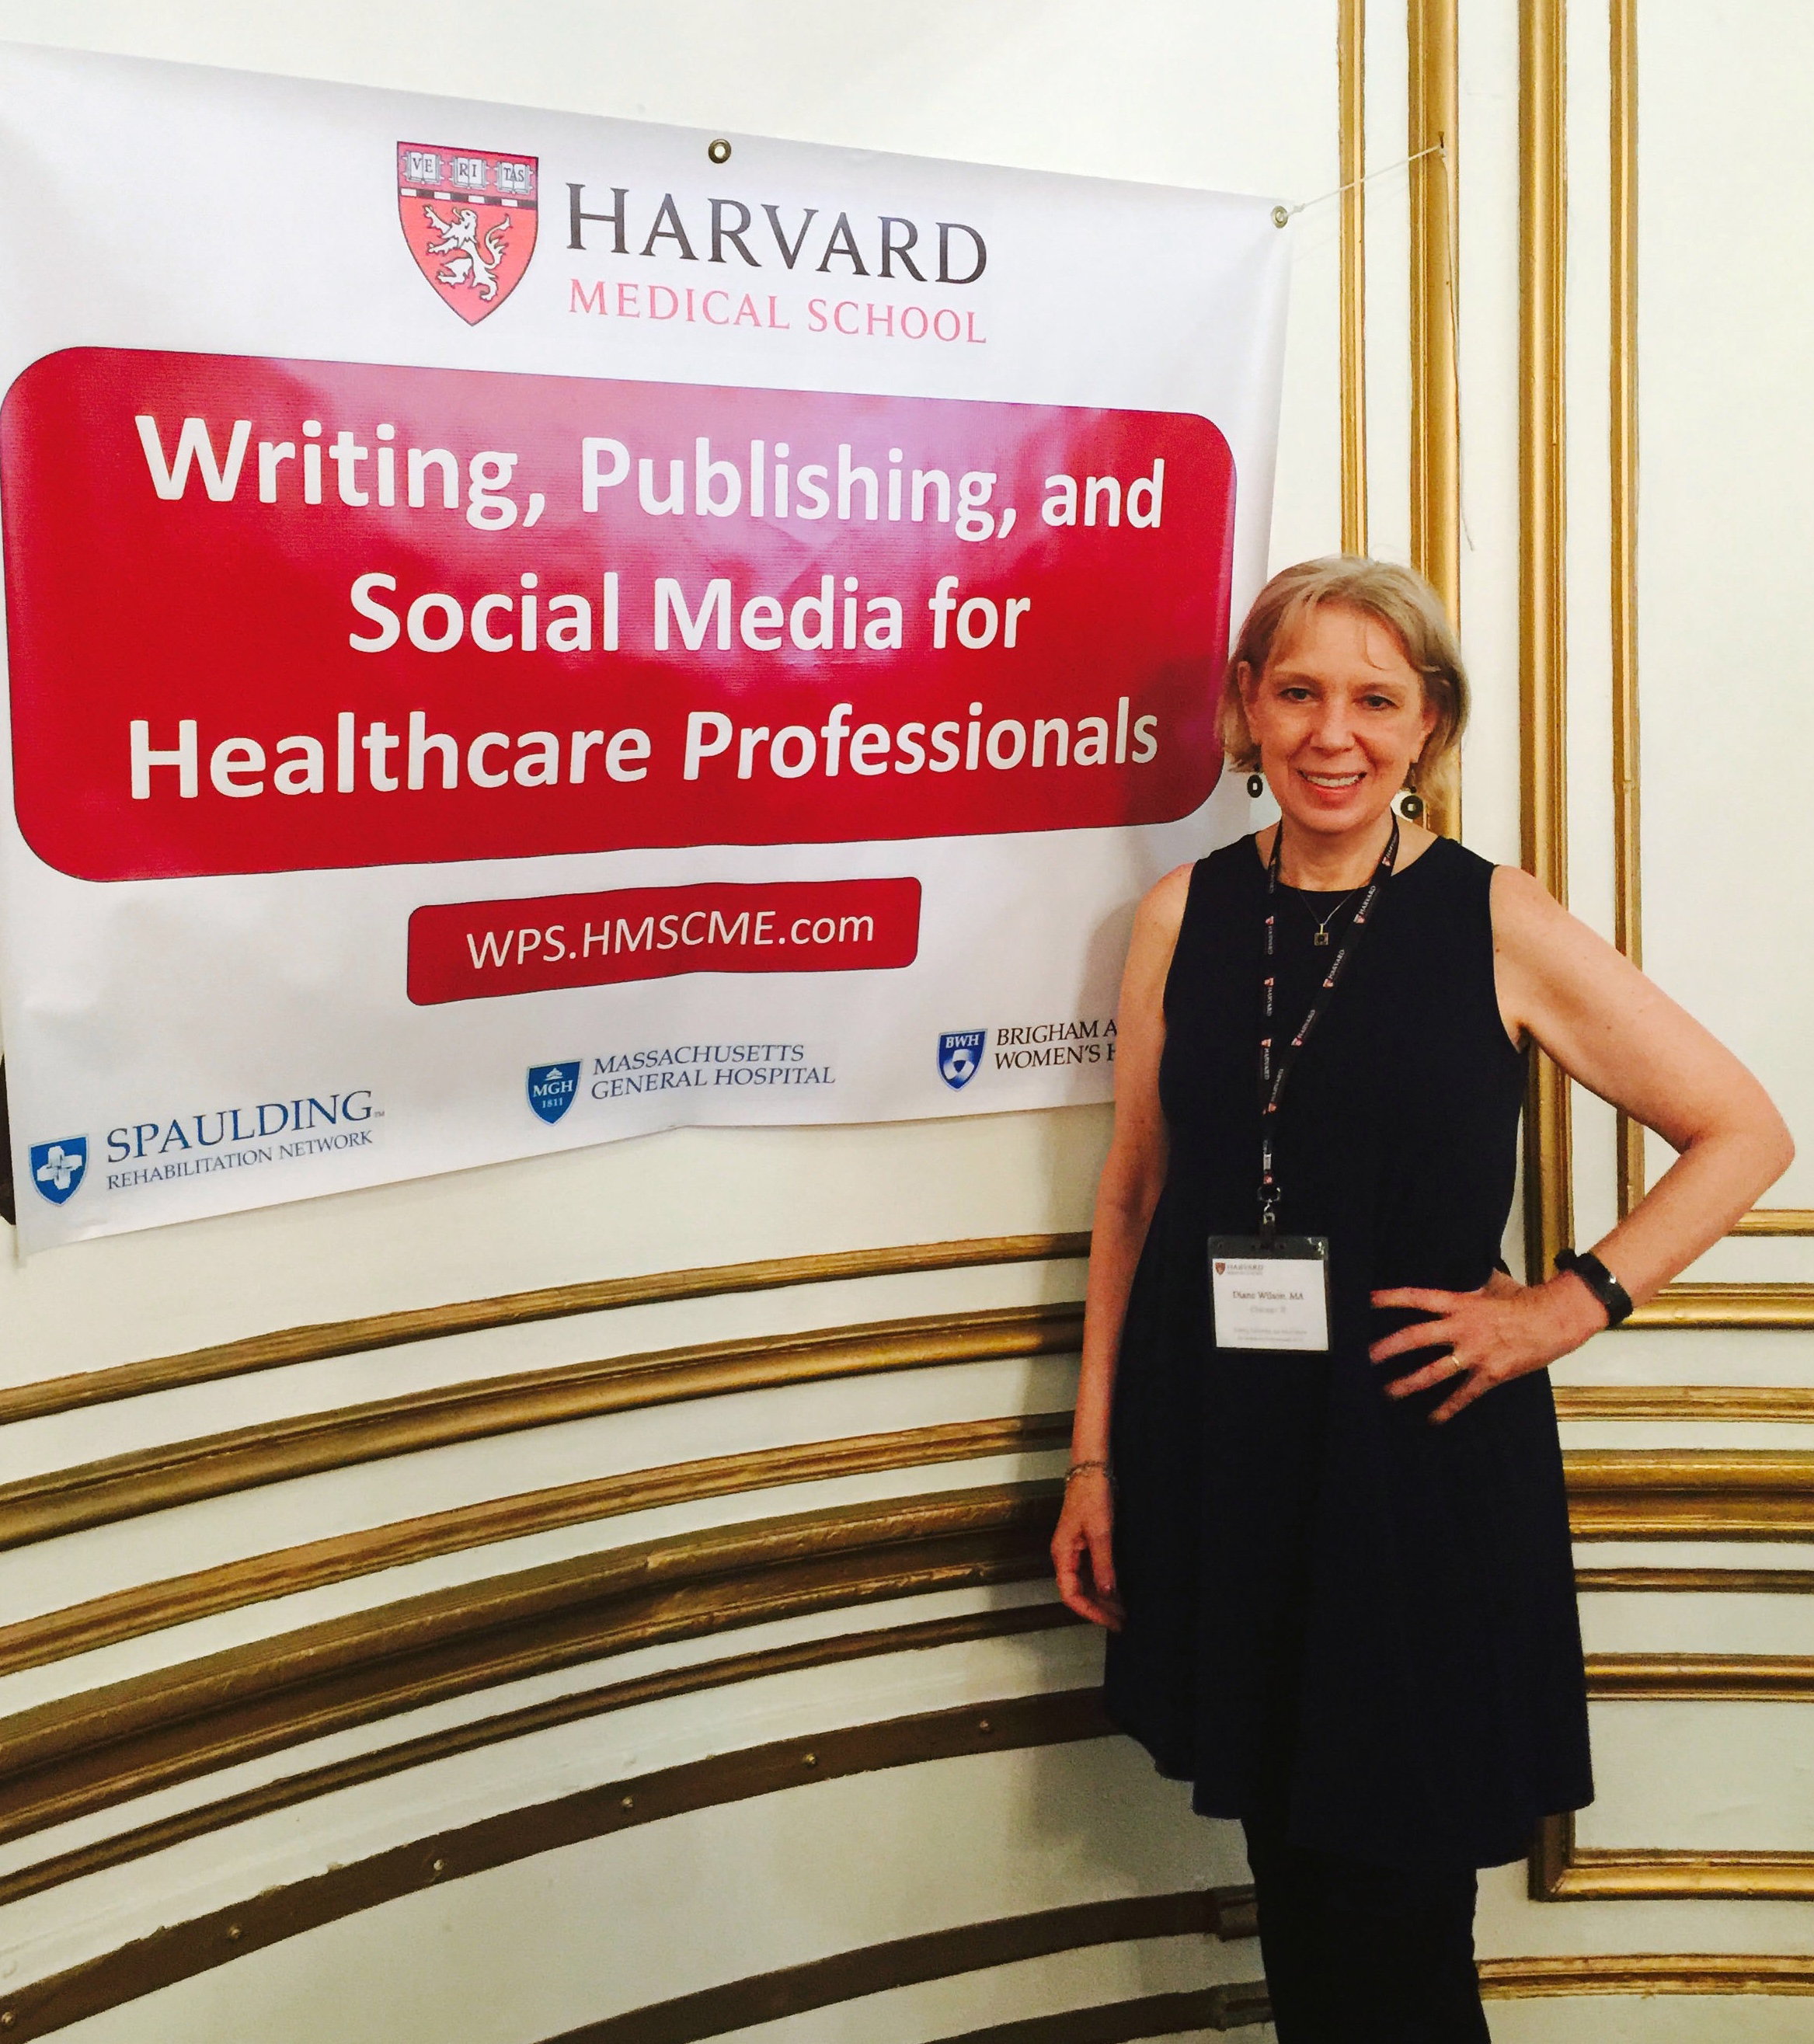 Diane attended a course on Writing, Publishing, and Social Media for Healthcare Professionals at Harvard University in June 2019.